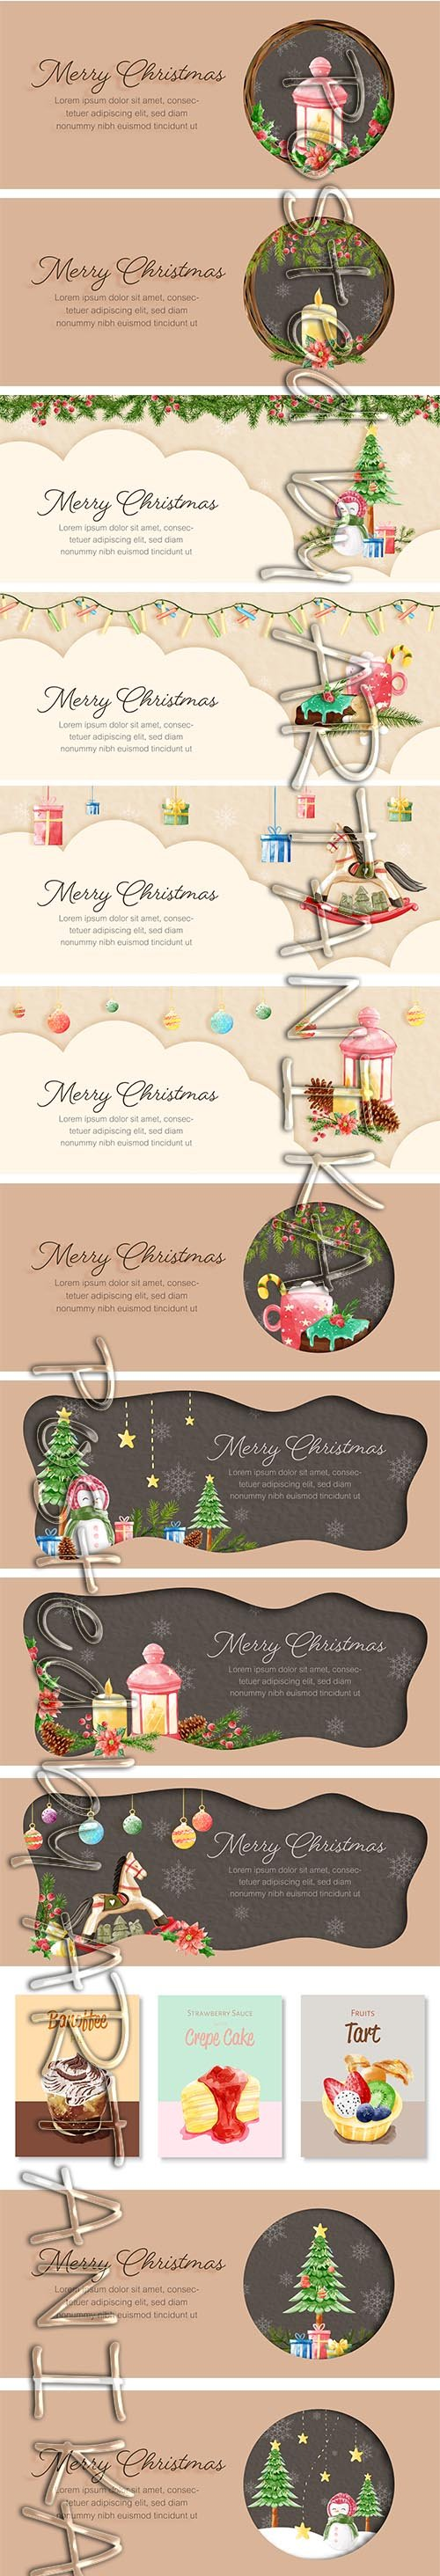 Merry Christmas Card Template Pack